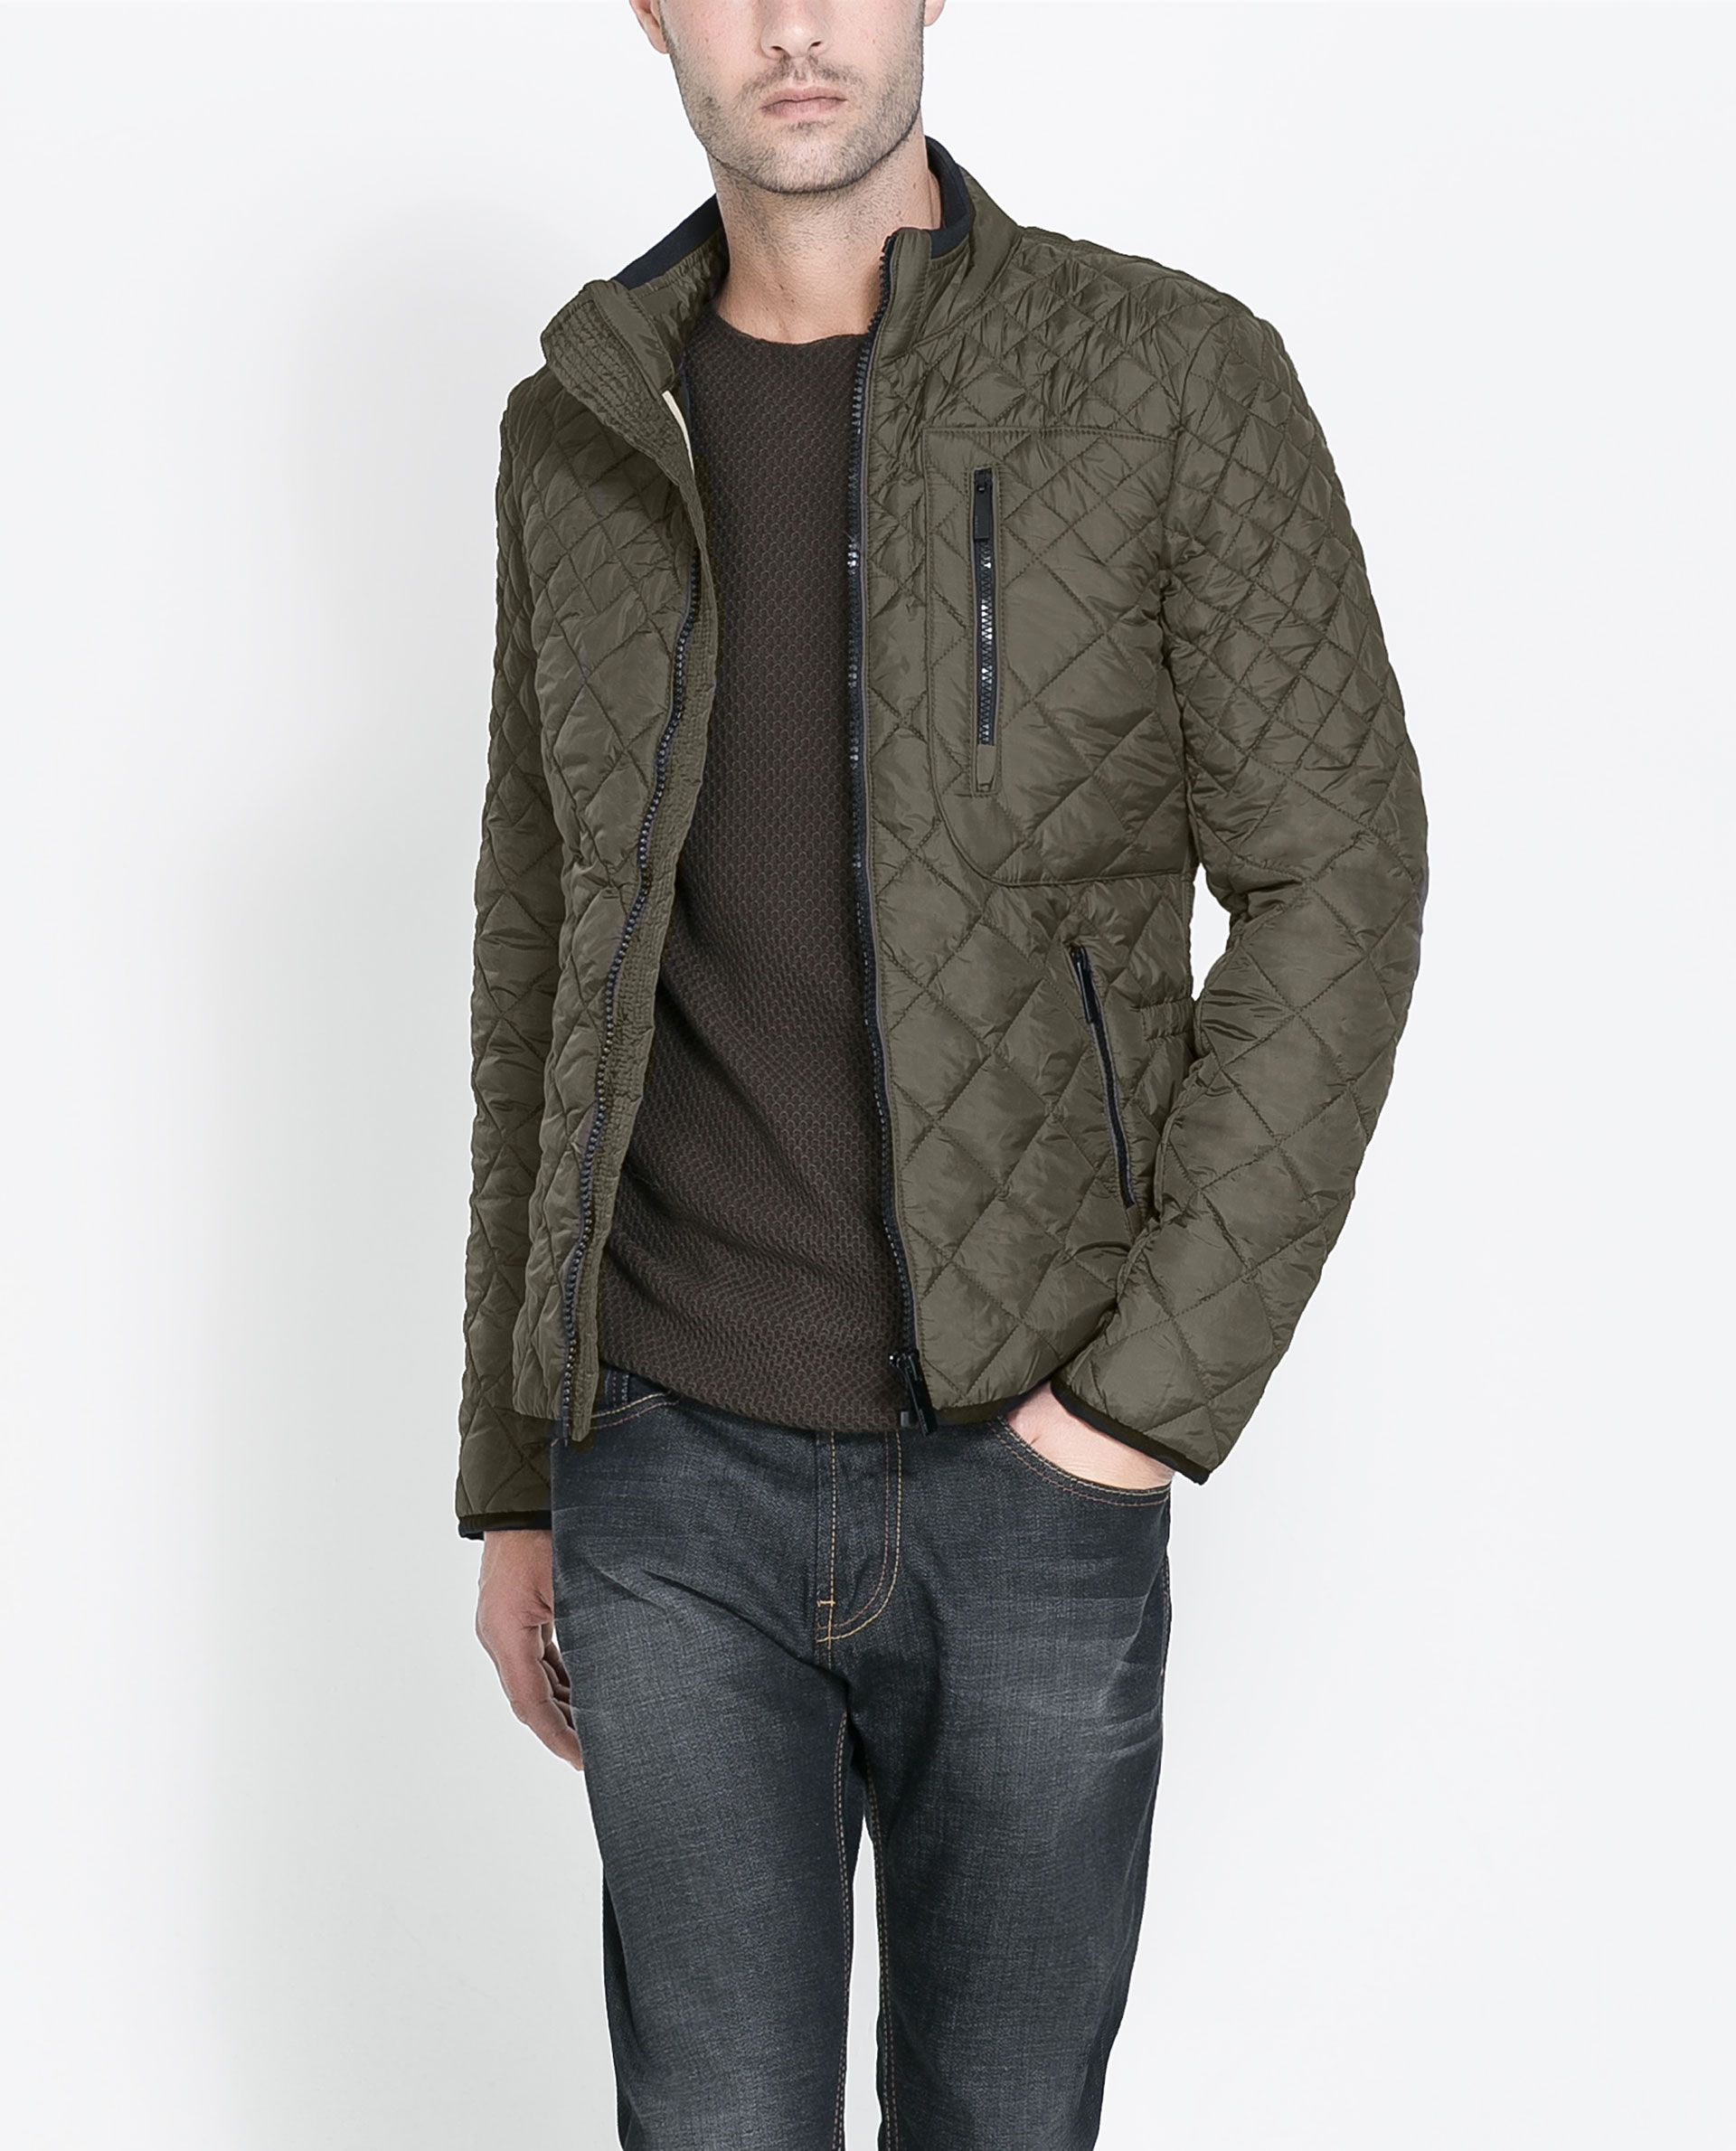 wear in mens jackets men man jacket bally s cotton quilted black shirt techno ready en to quilt